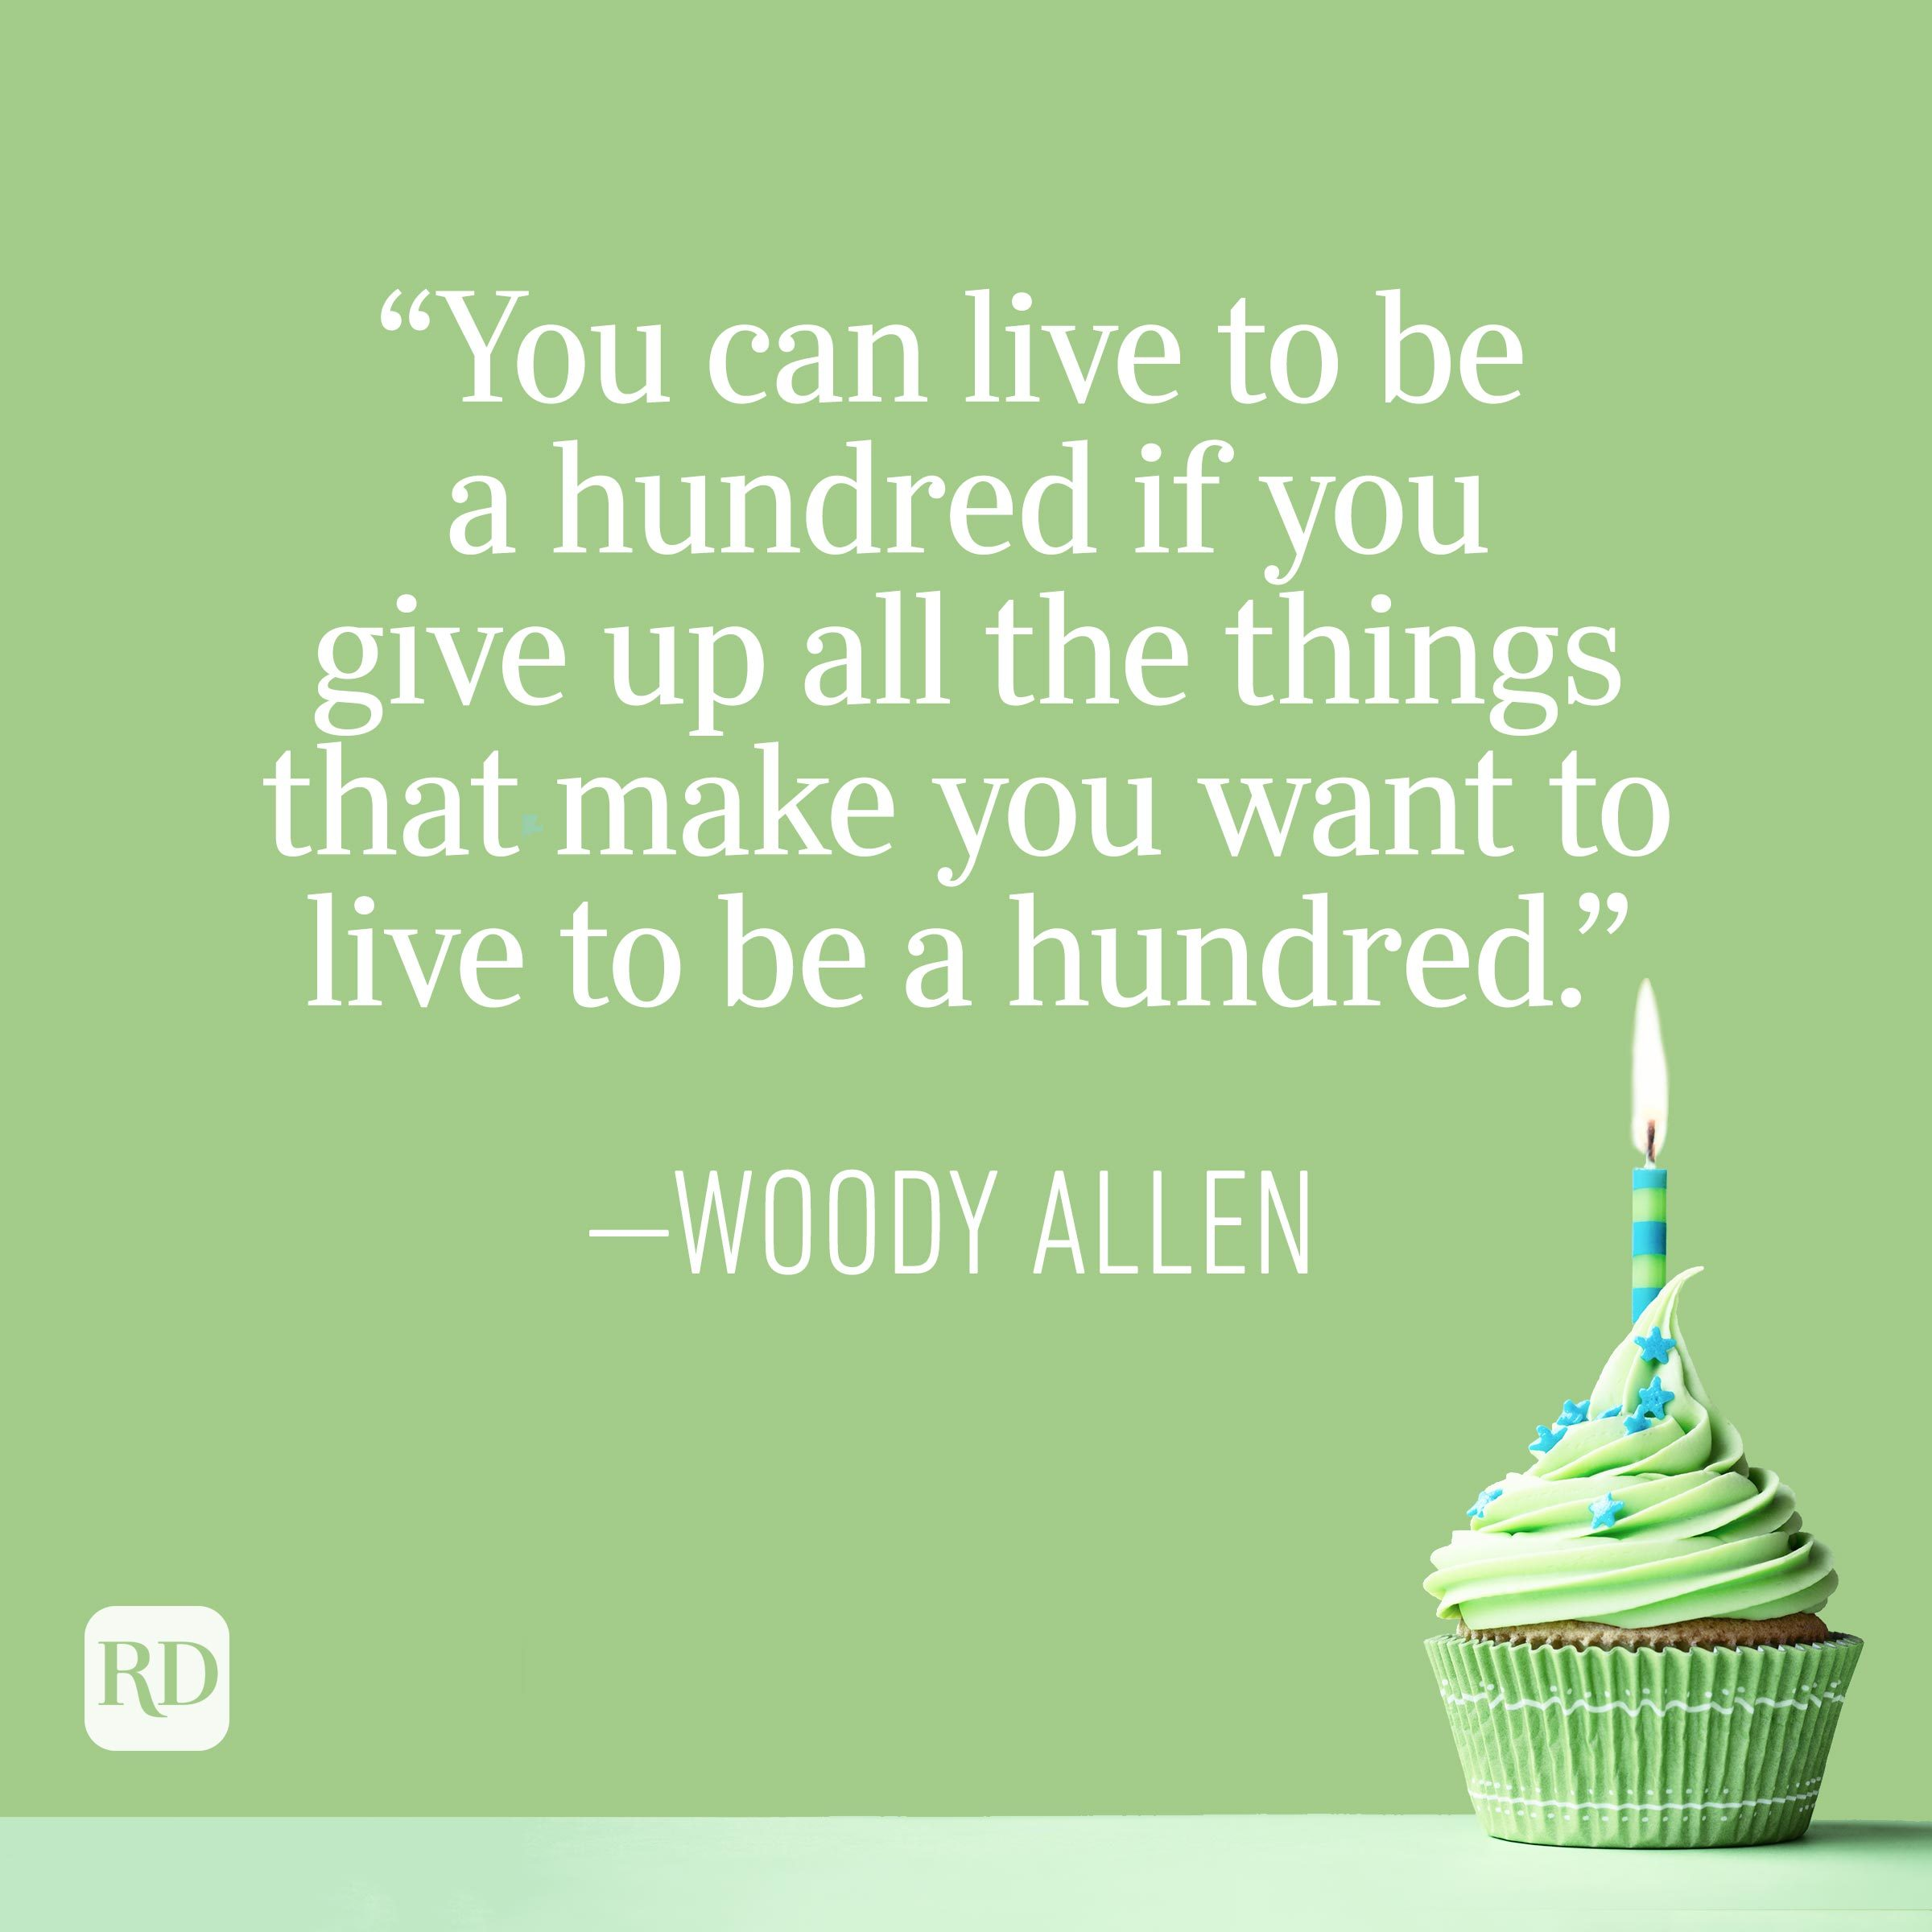 """""""You can live to be a hundred if you give up all the things that make you want to live to be a hundred."""" —Woody Allen"""